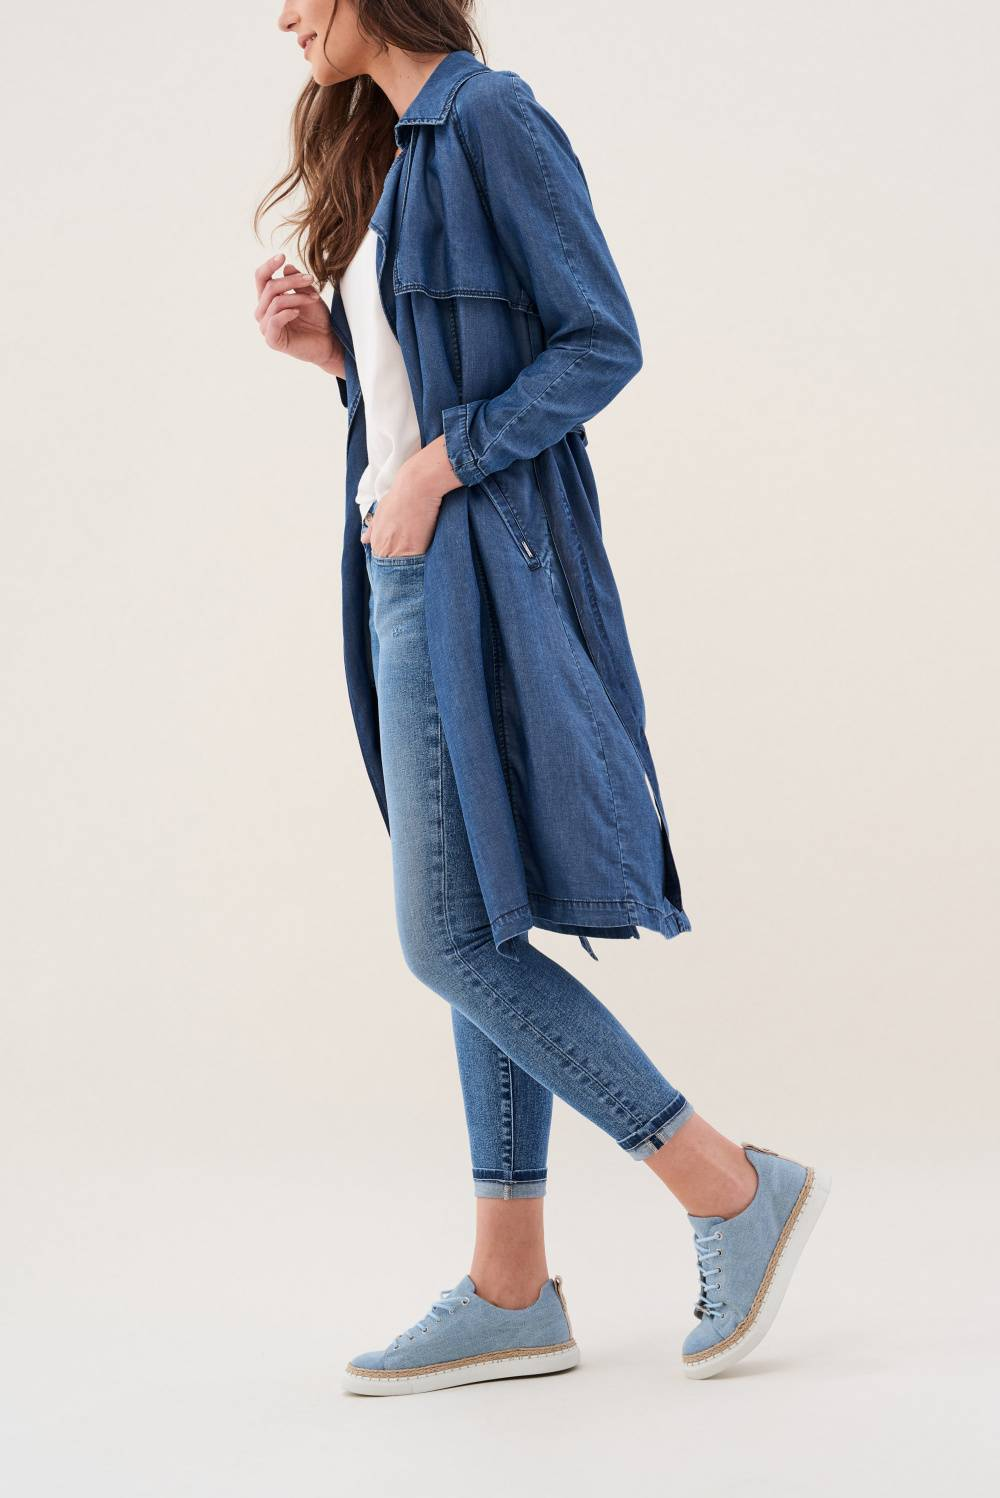 Jacke, Trenchcoat, denim - Salsa